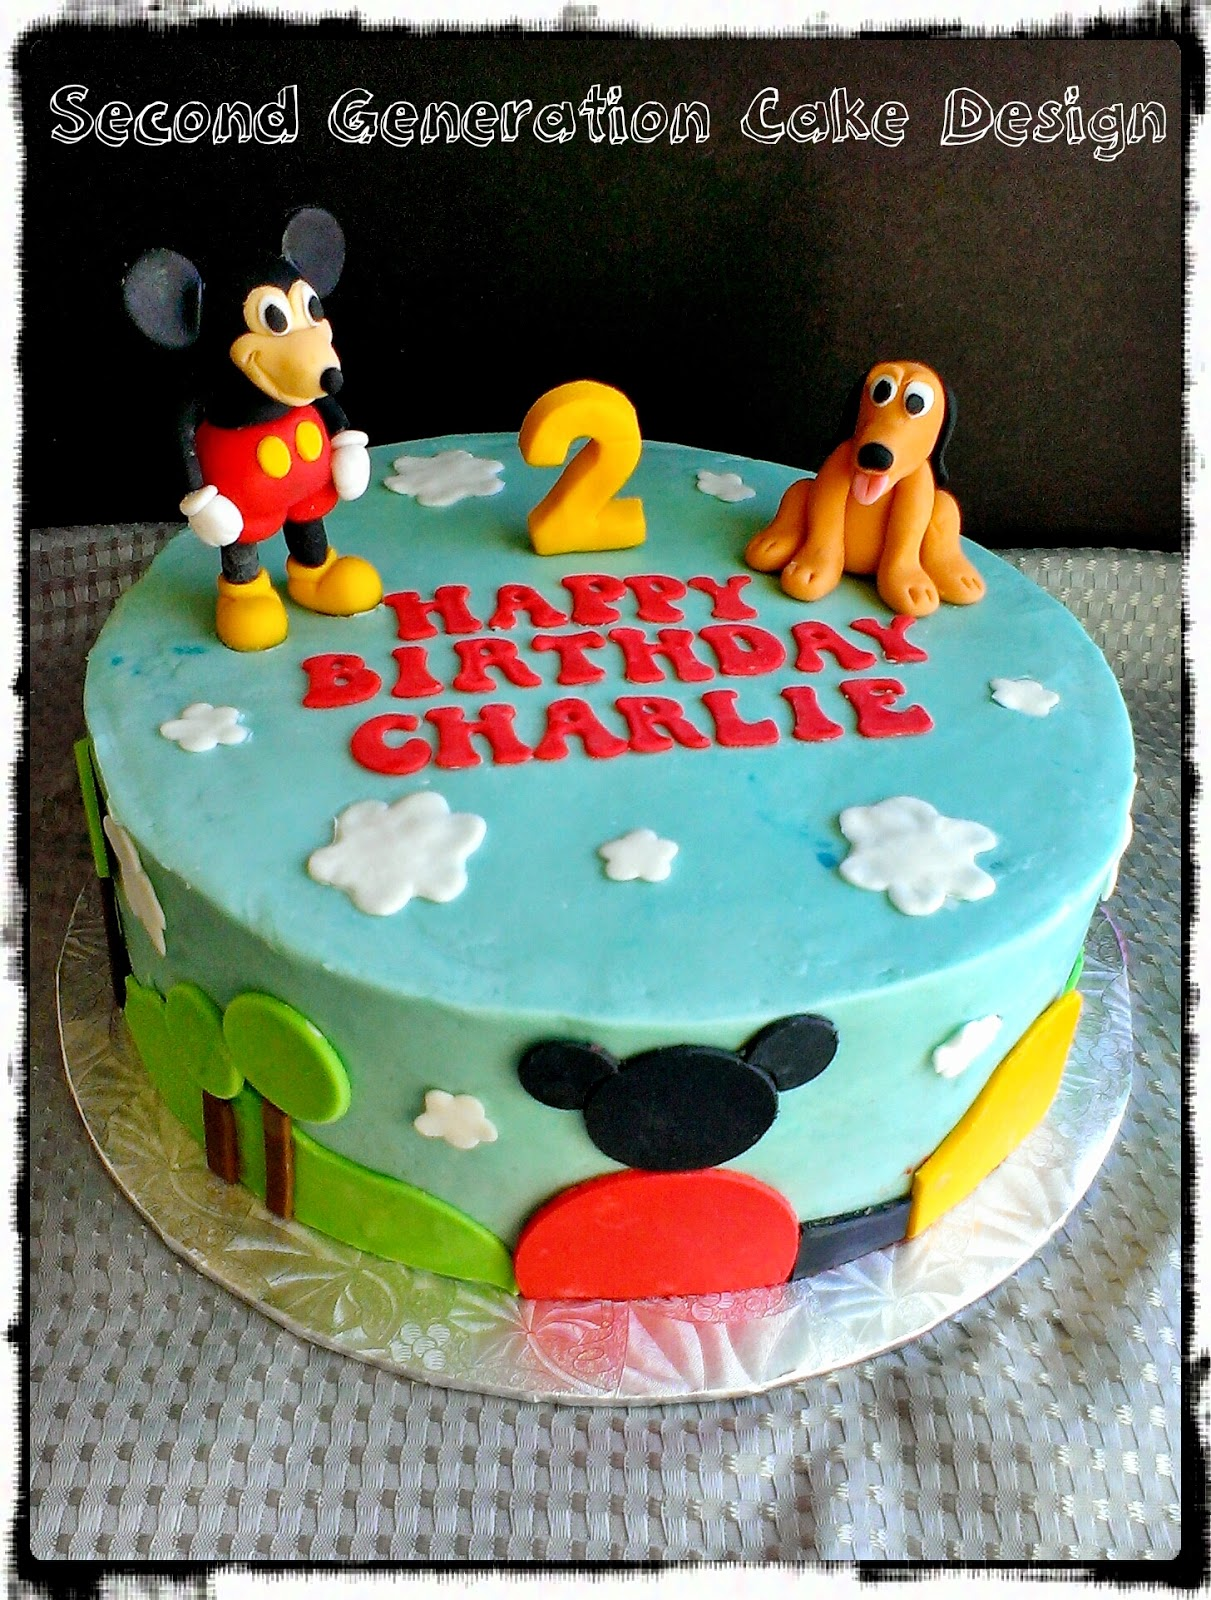 Charlie Wanted Mickey And Pluto On His Cake This Is The First Time I Had Modeled In 3d Was SO Happy With How He Turned Out